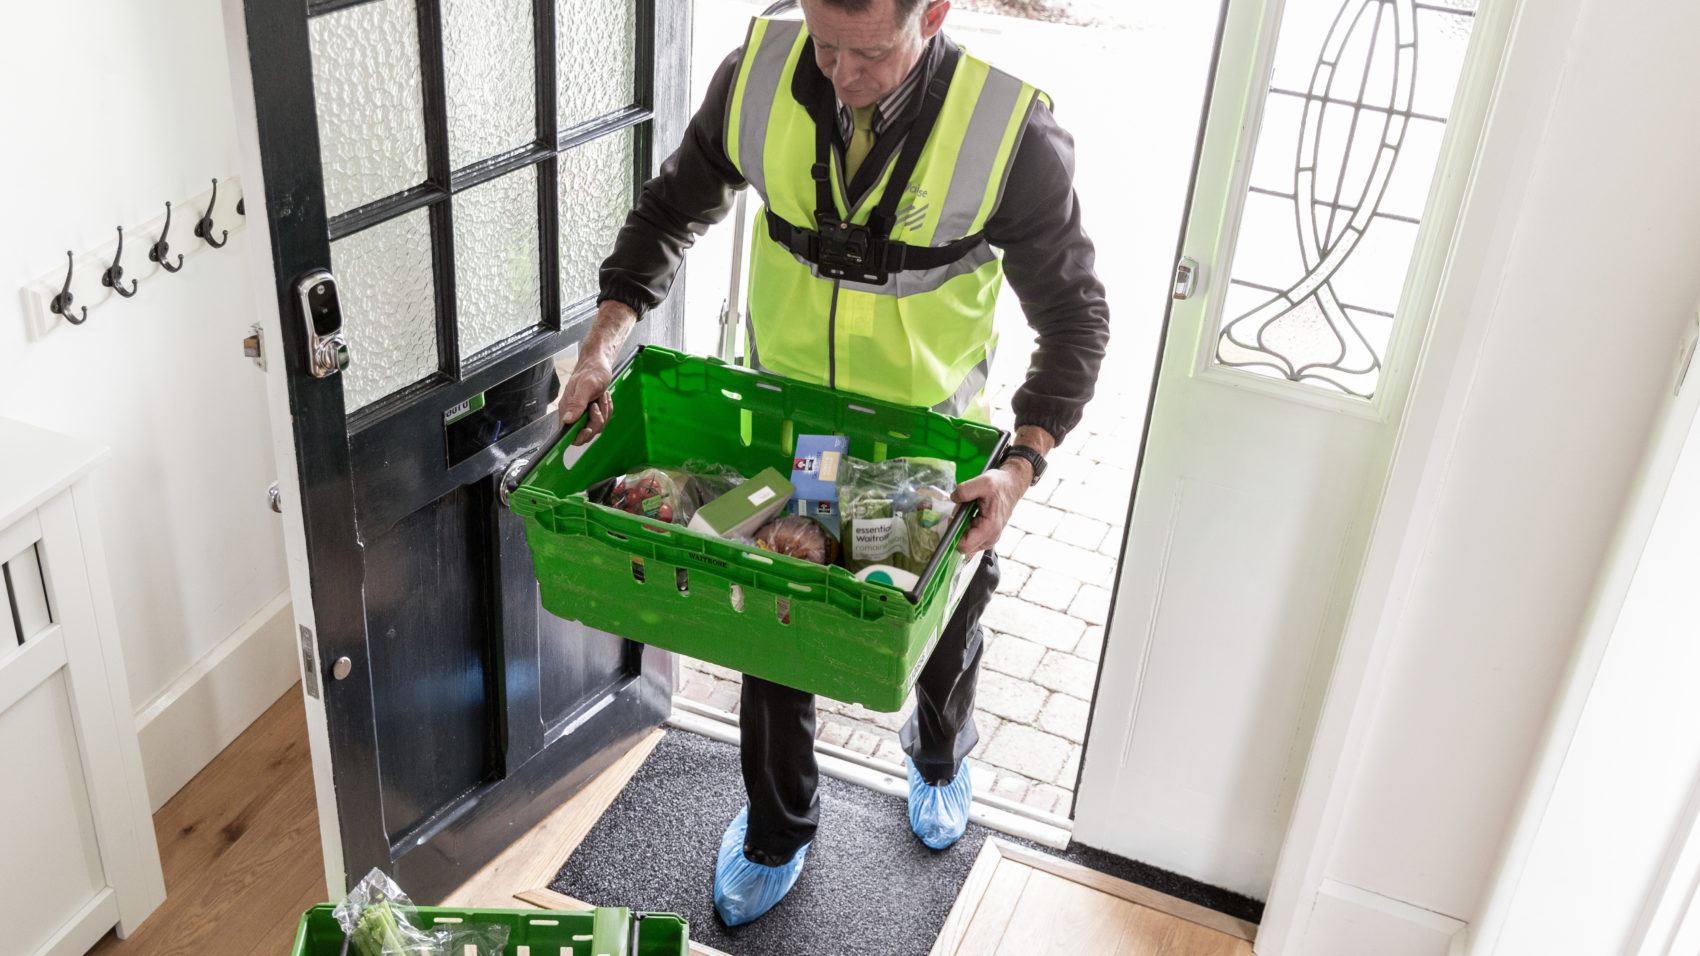 Waitrose's While You're Away service allows delivery drivers to enter customer's homes to unpack their shopping (Photo: Waitrose)